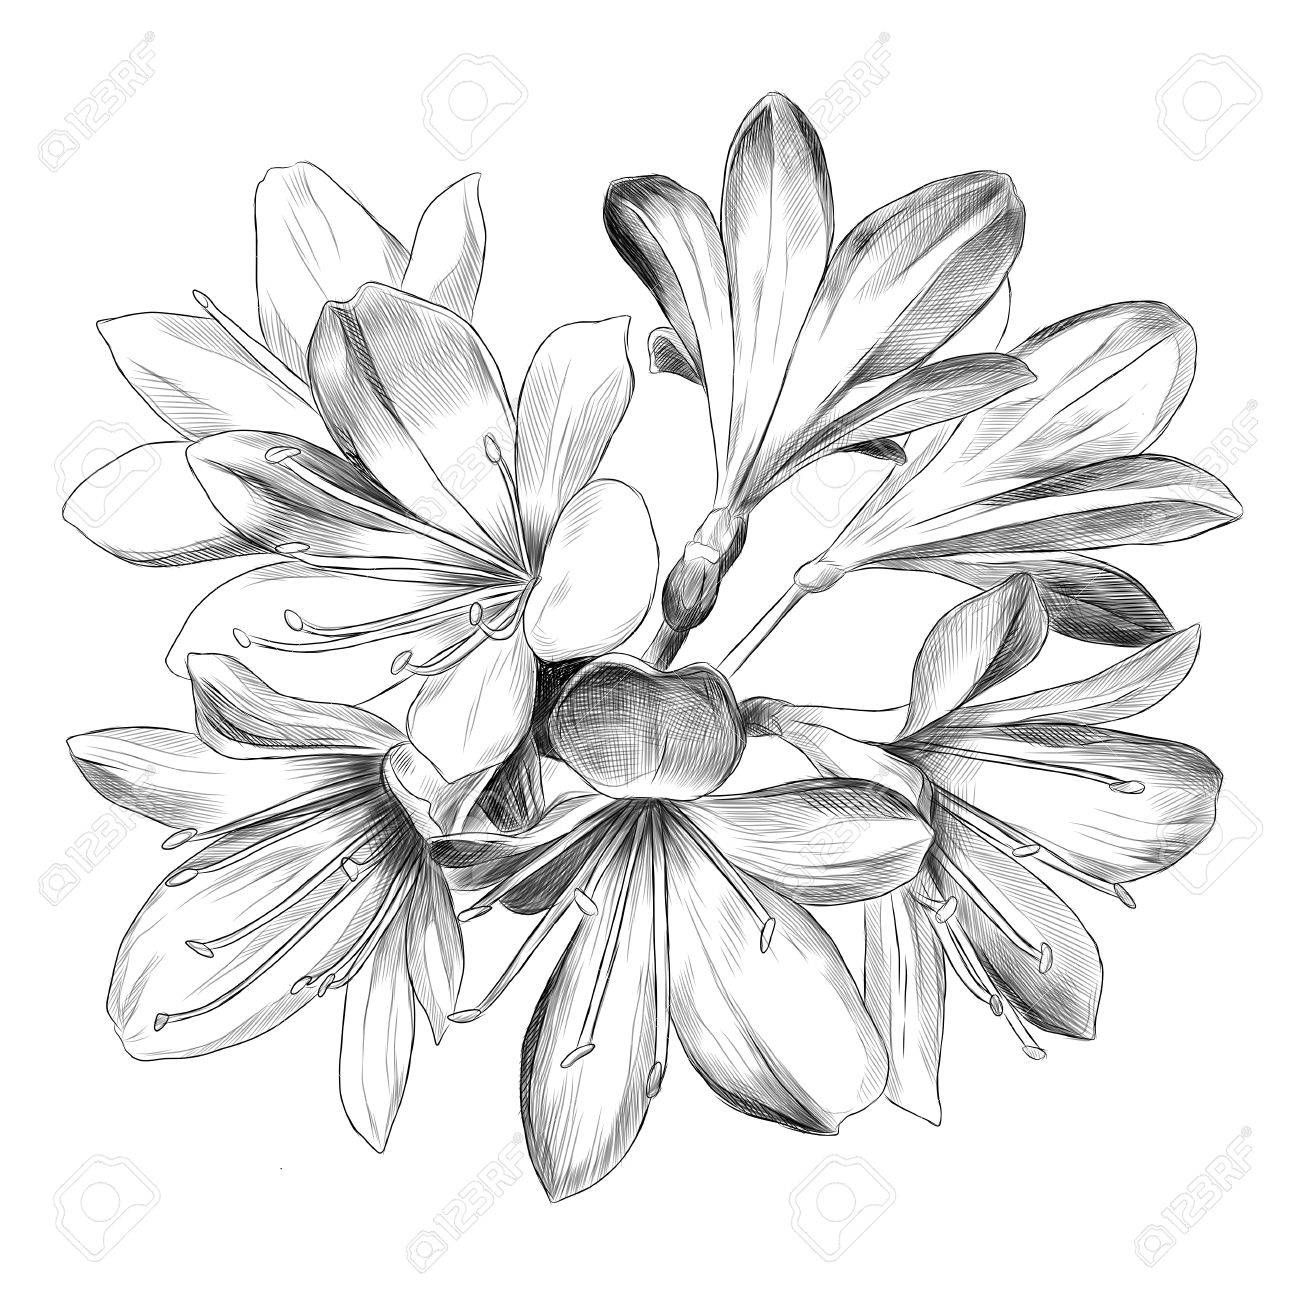 Lily bouquet 7 flowers sketch vector graphics black and white lily bouquet 7 flowers sketch vector graphics black and white drawing stock vector 80714737 mightylinksfo